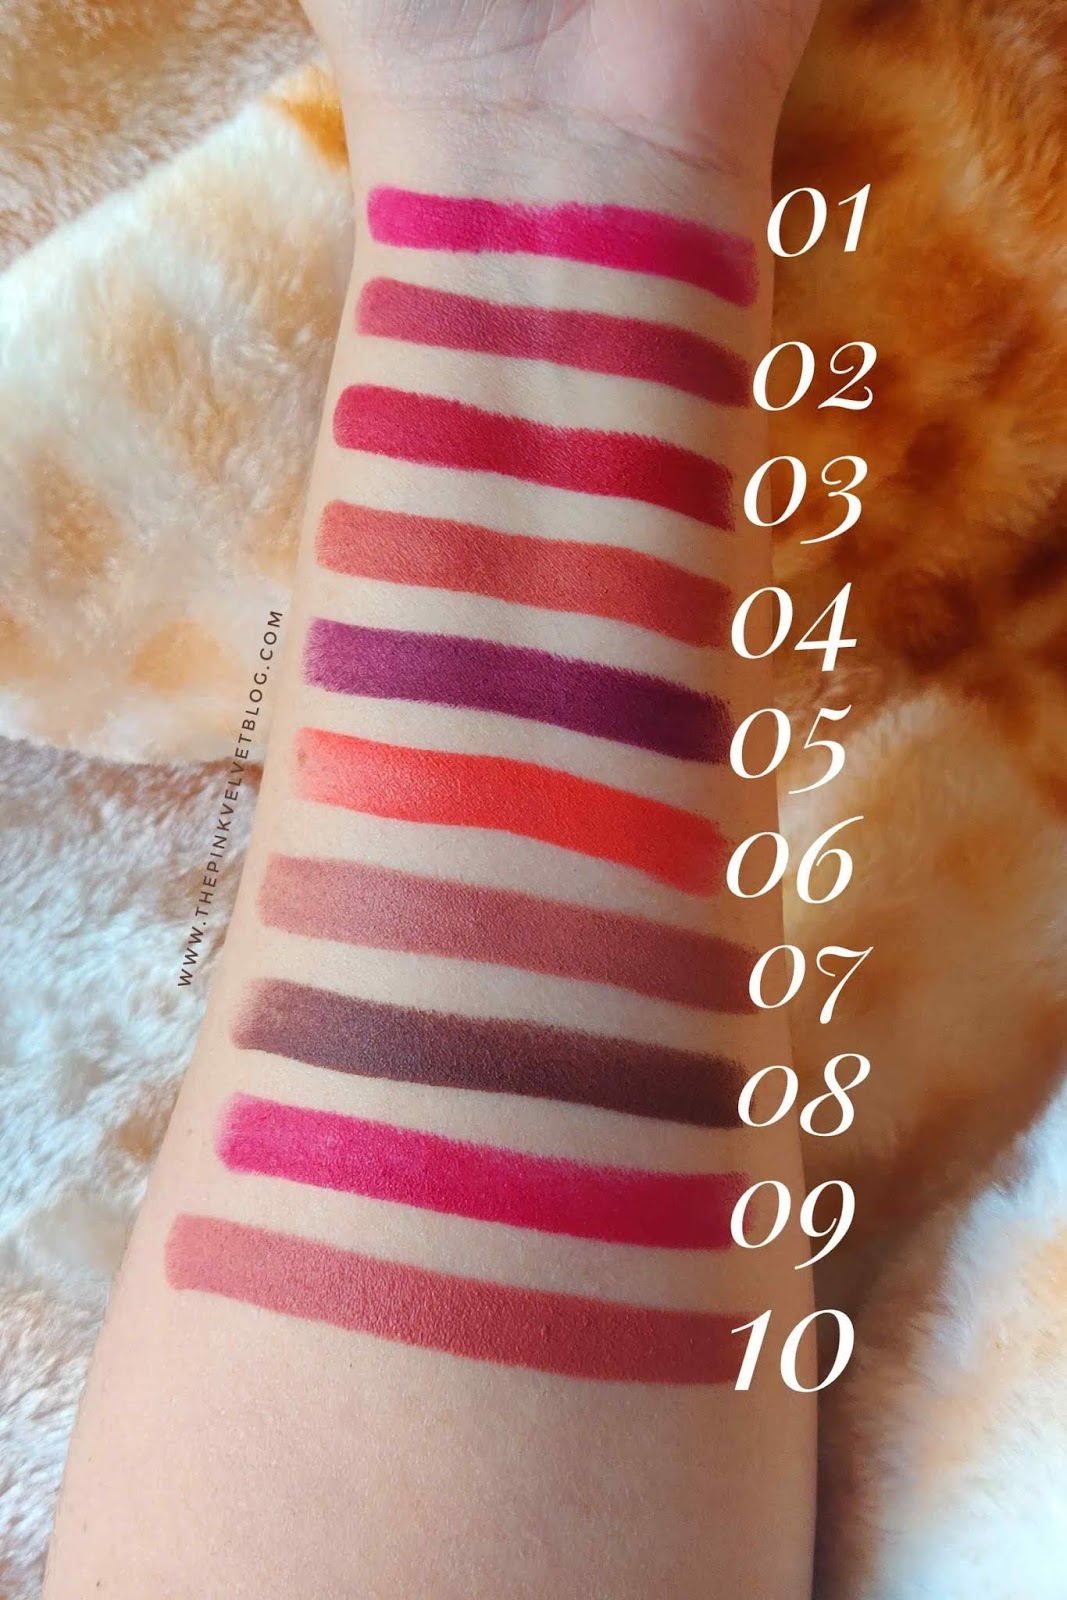 SUGAR Cosmetics Mettle Satin Lipstick - Review and Swatches - All 10 Shades